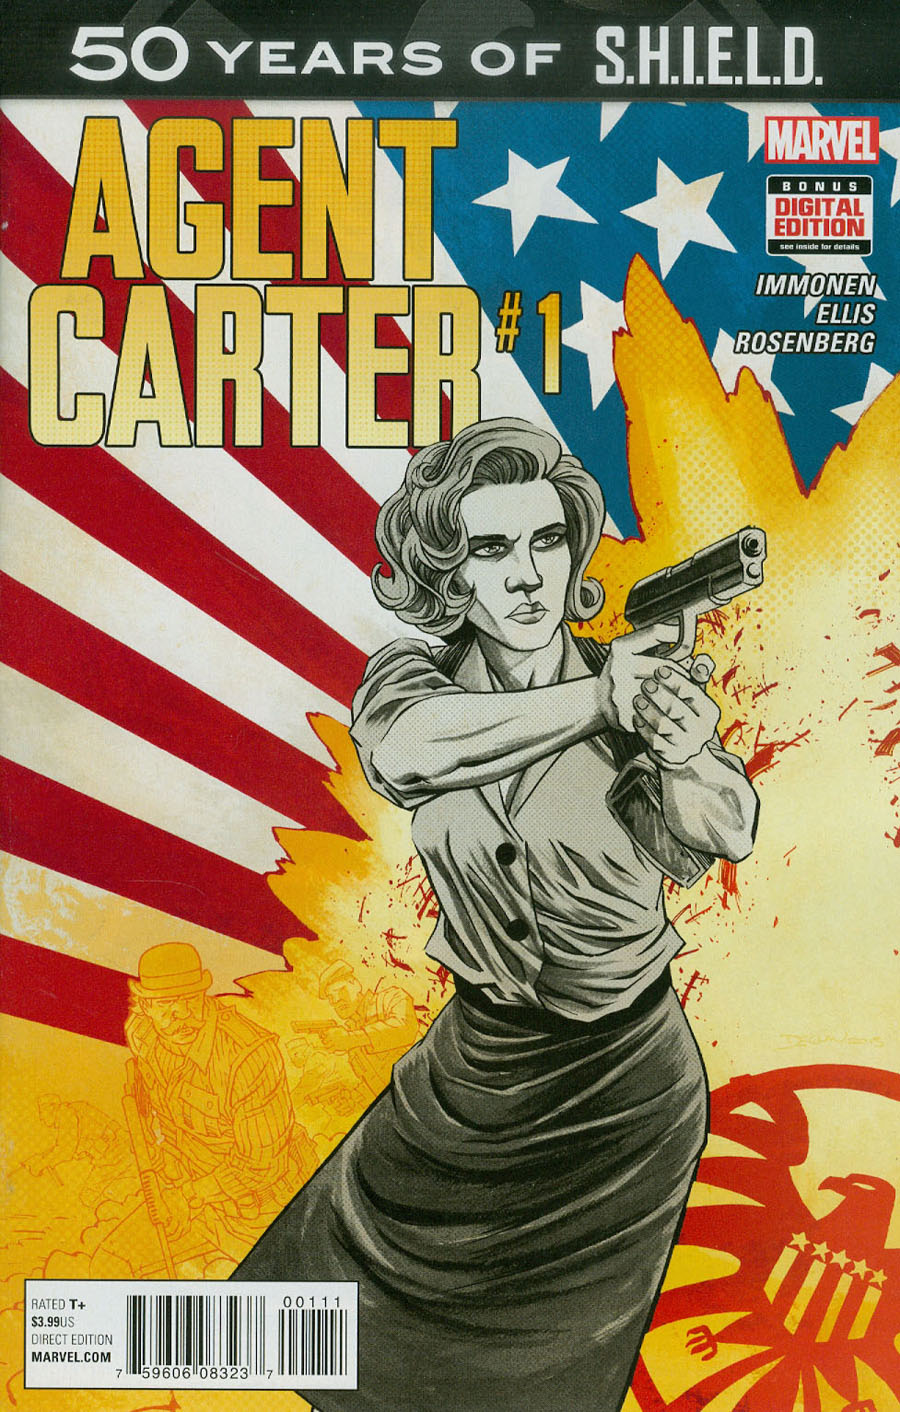 Agent Carter S.H.I.E.L.D. 50th Anniversary #1 Cover A Regular Declan Shalvey Cover